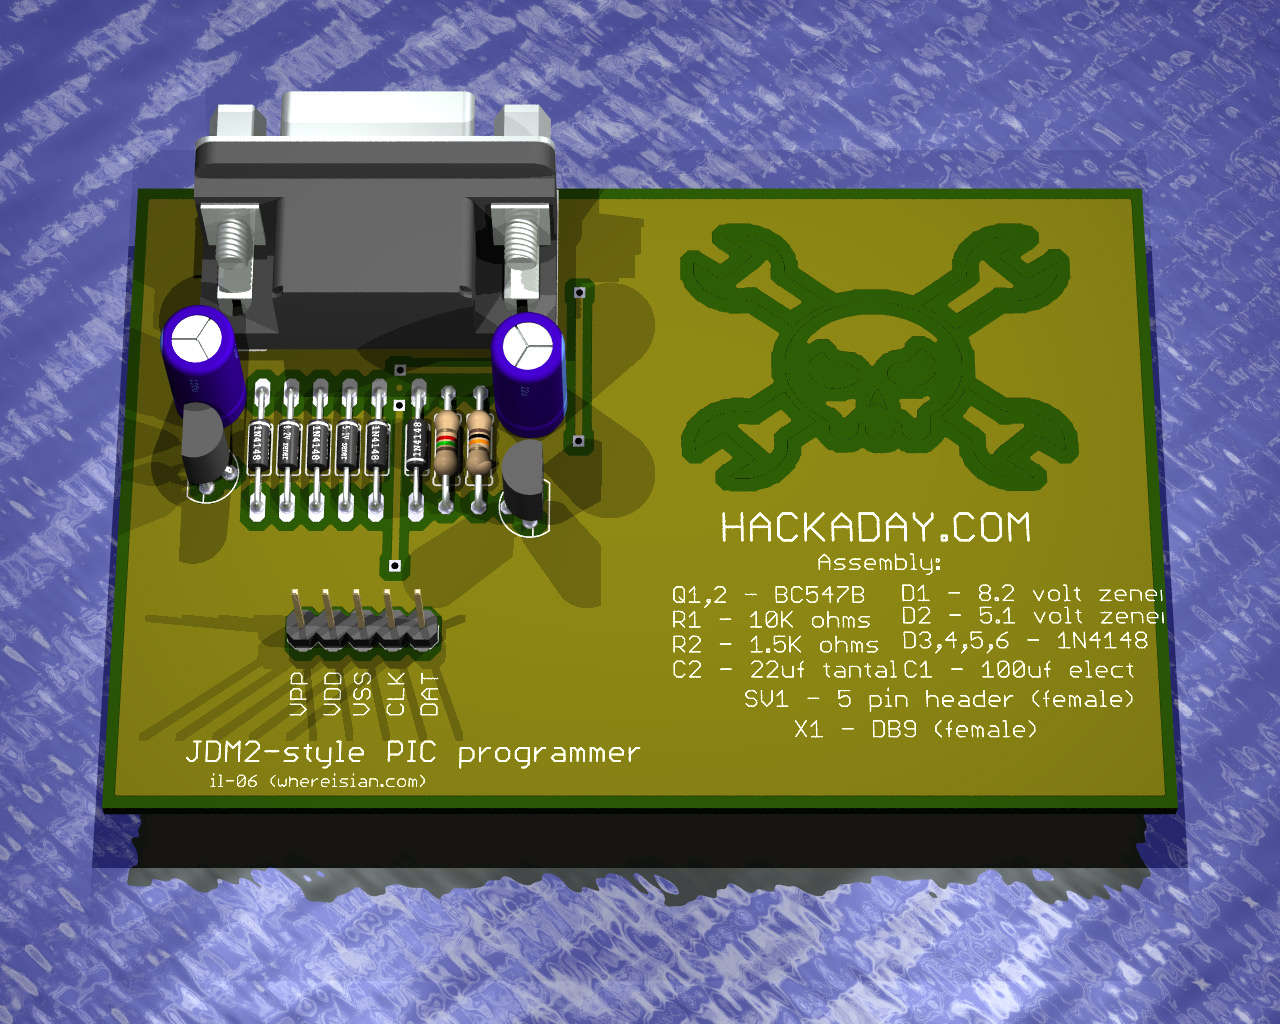 Business Card PIC Programmer